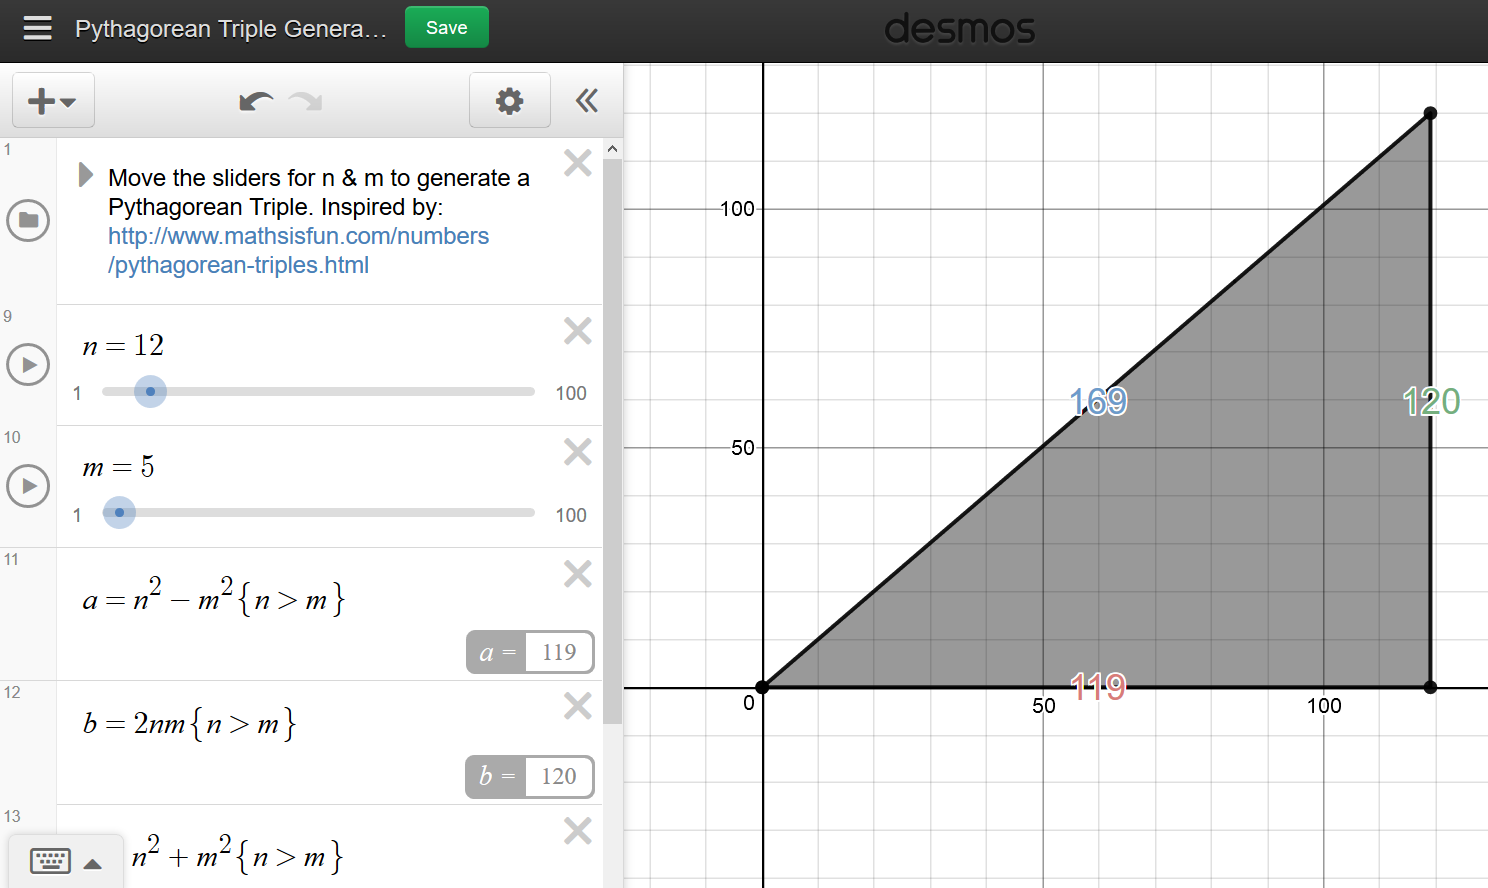 Desmos File That Allows You Do Dynamically Generate